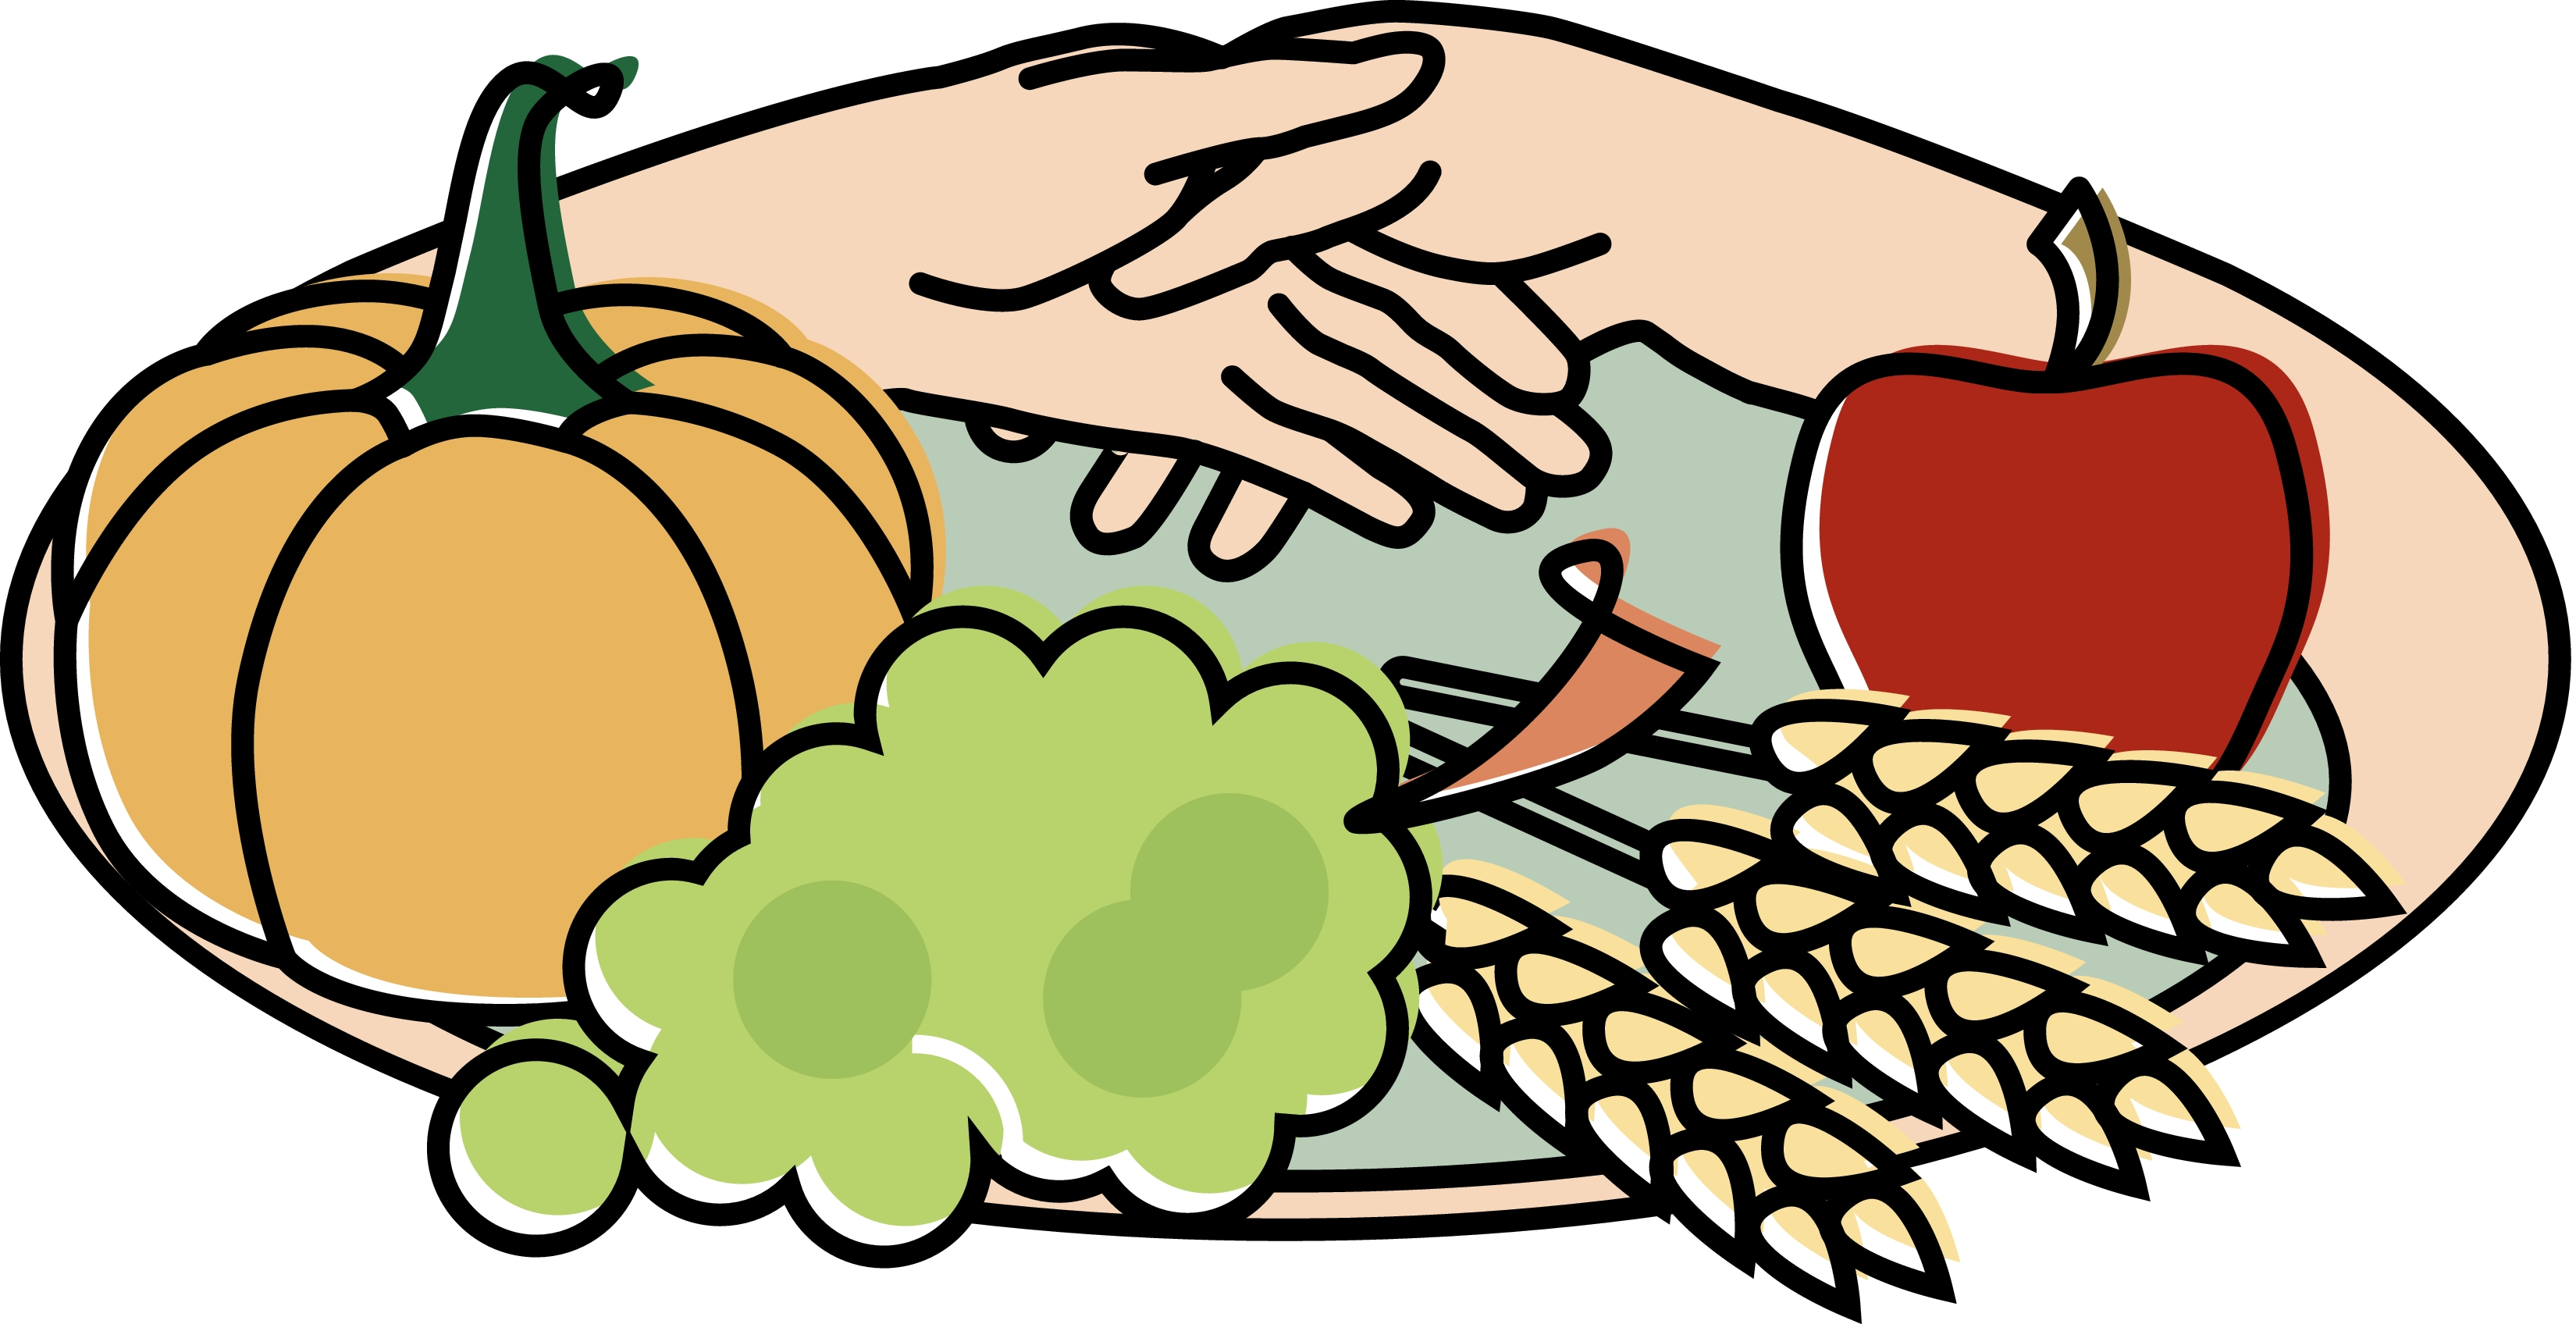 Diner clipart lunch special. Food plate with spring